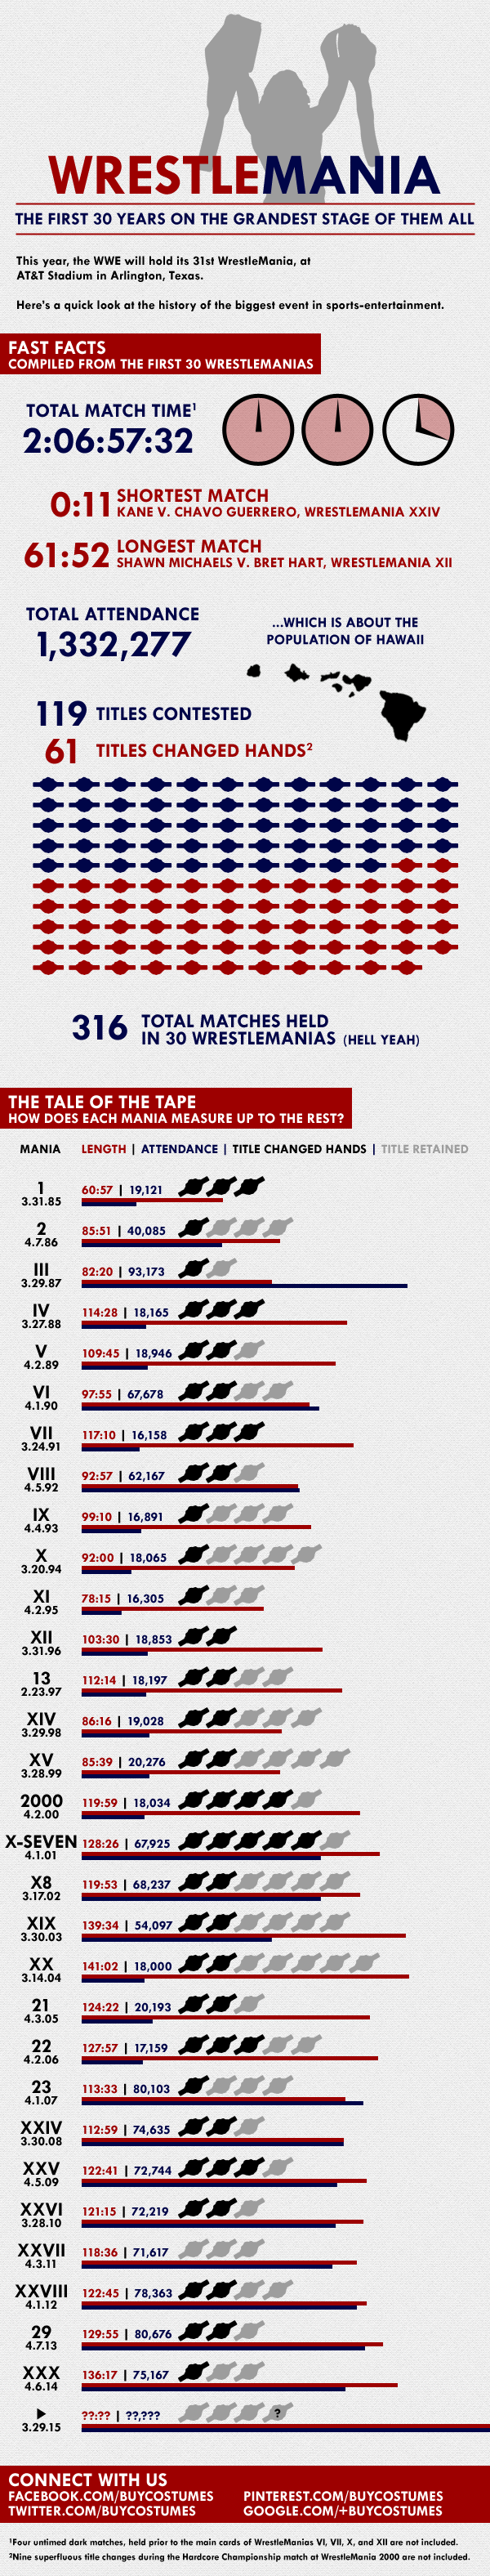 WWE WrestleMania infographic - stats about the first 30 years of WrestleMania